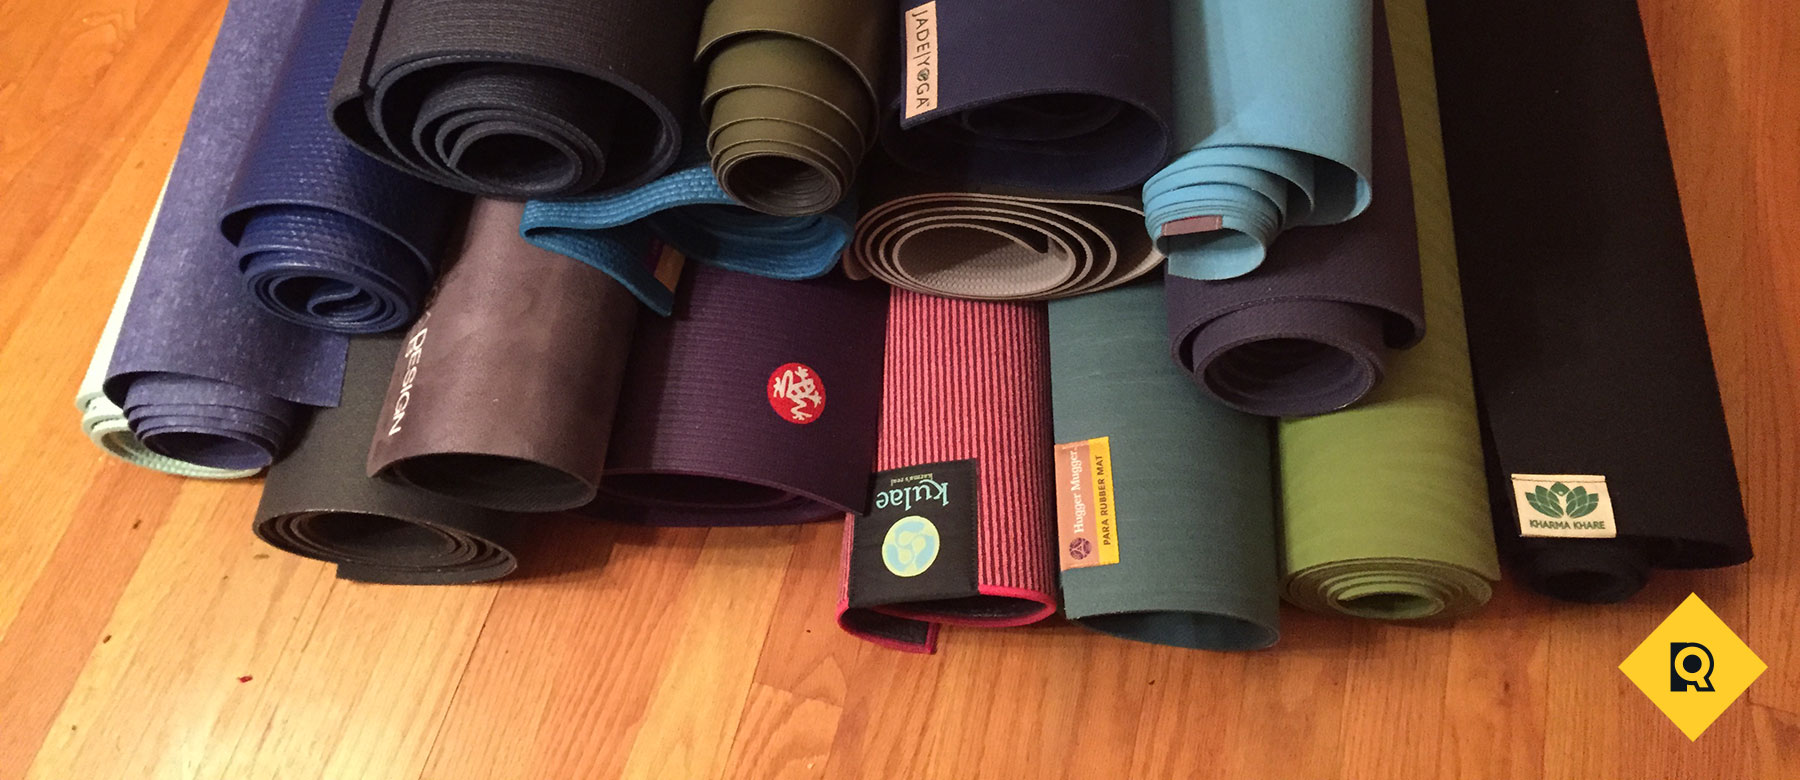 harmony at bl uk sale black mats home jade yoga products learn mat